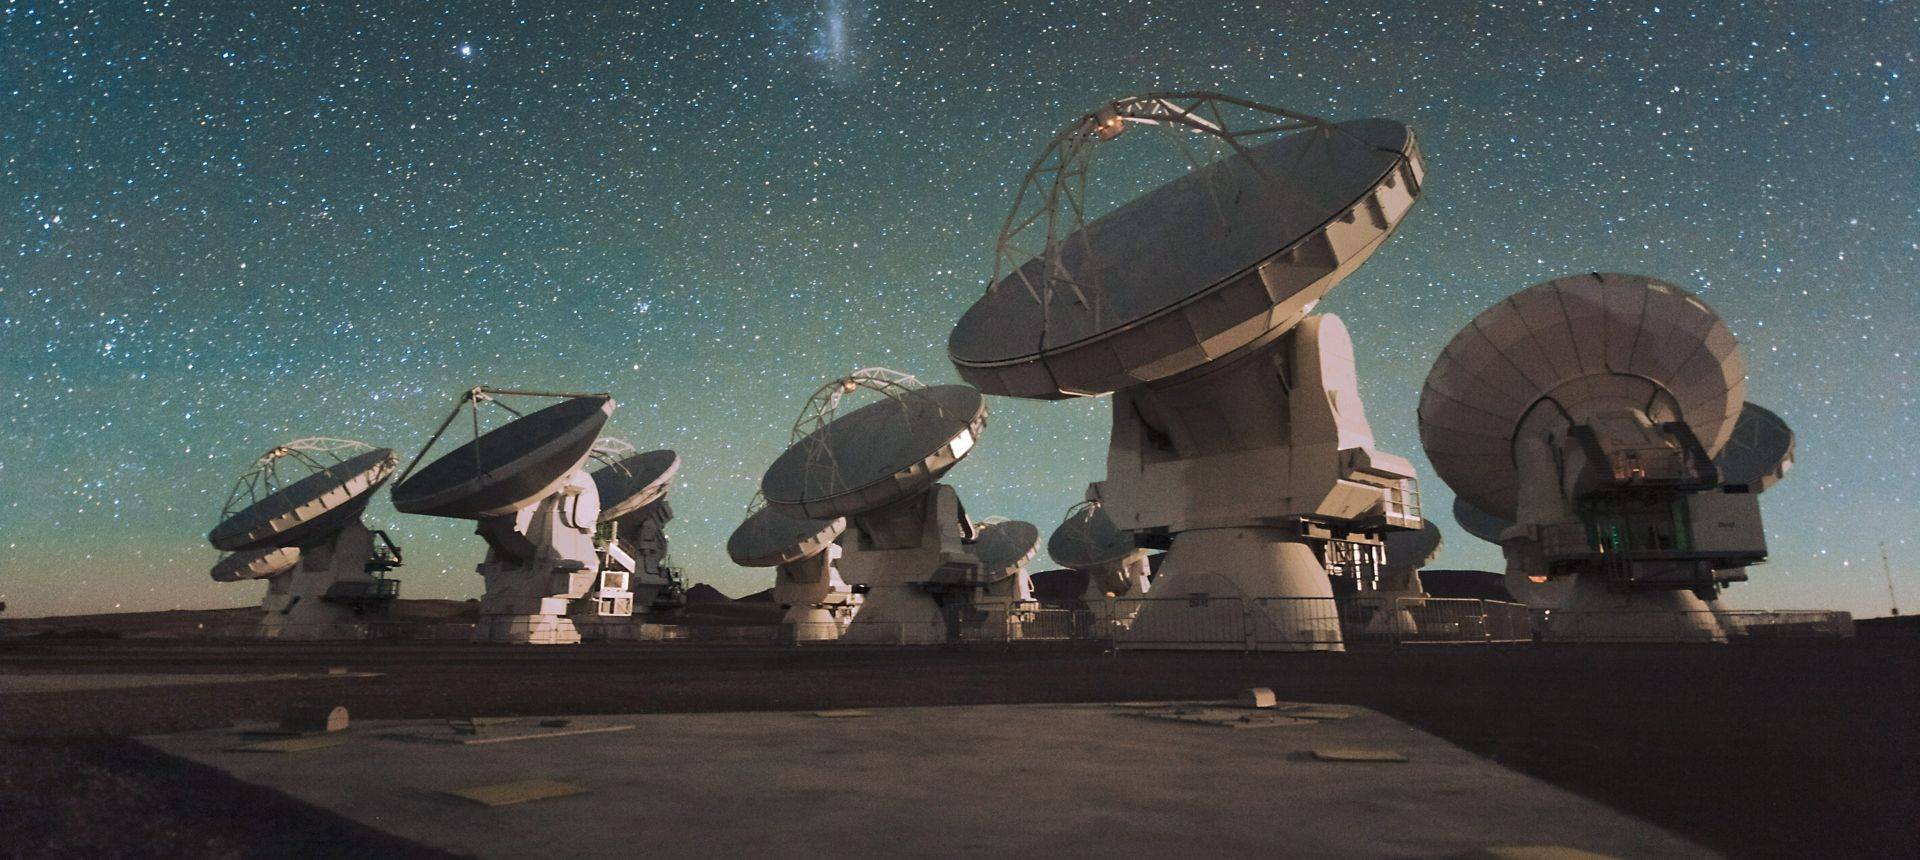 ALMA Radio Telescopes ESO/C Malin